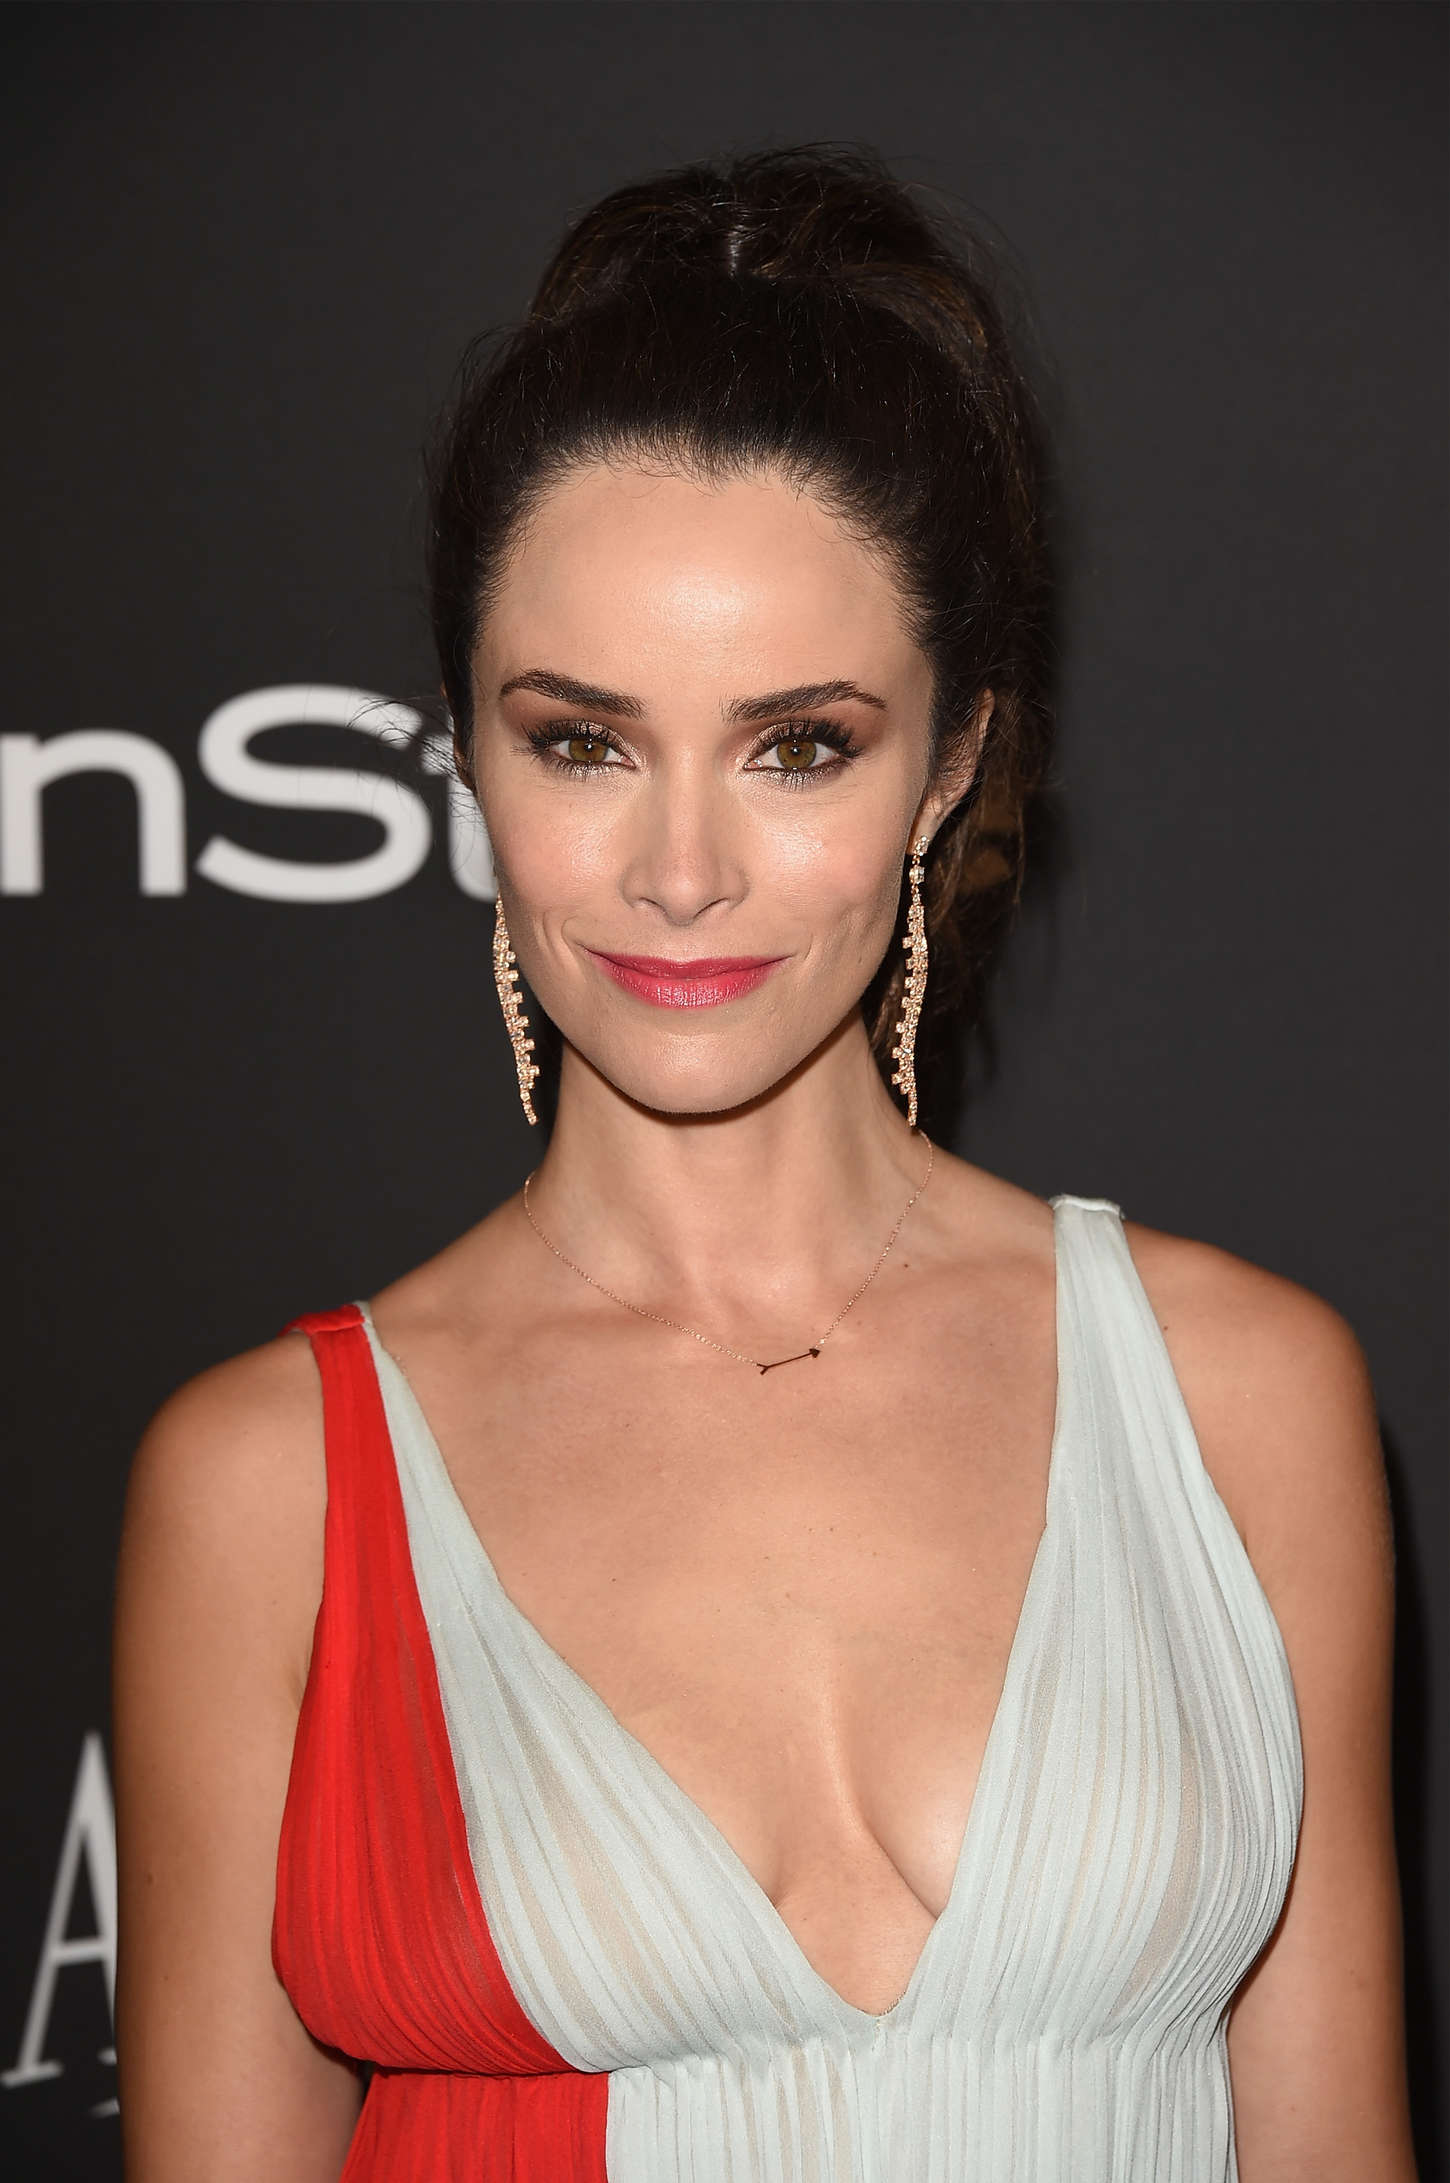 Cleavage Abigail Spencer nudes (58 images), Twitter